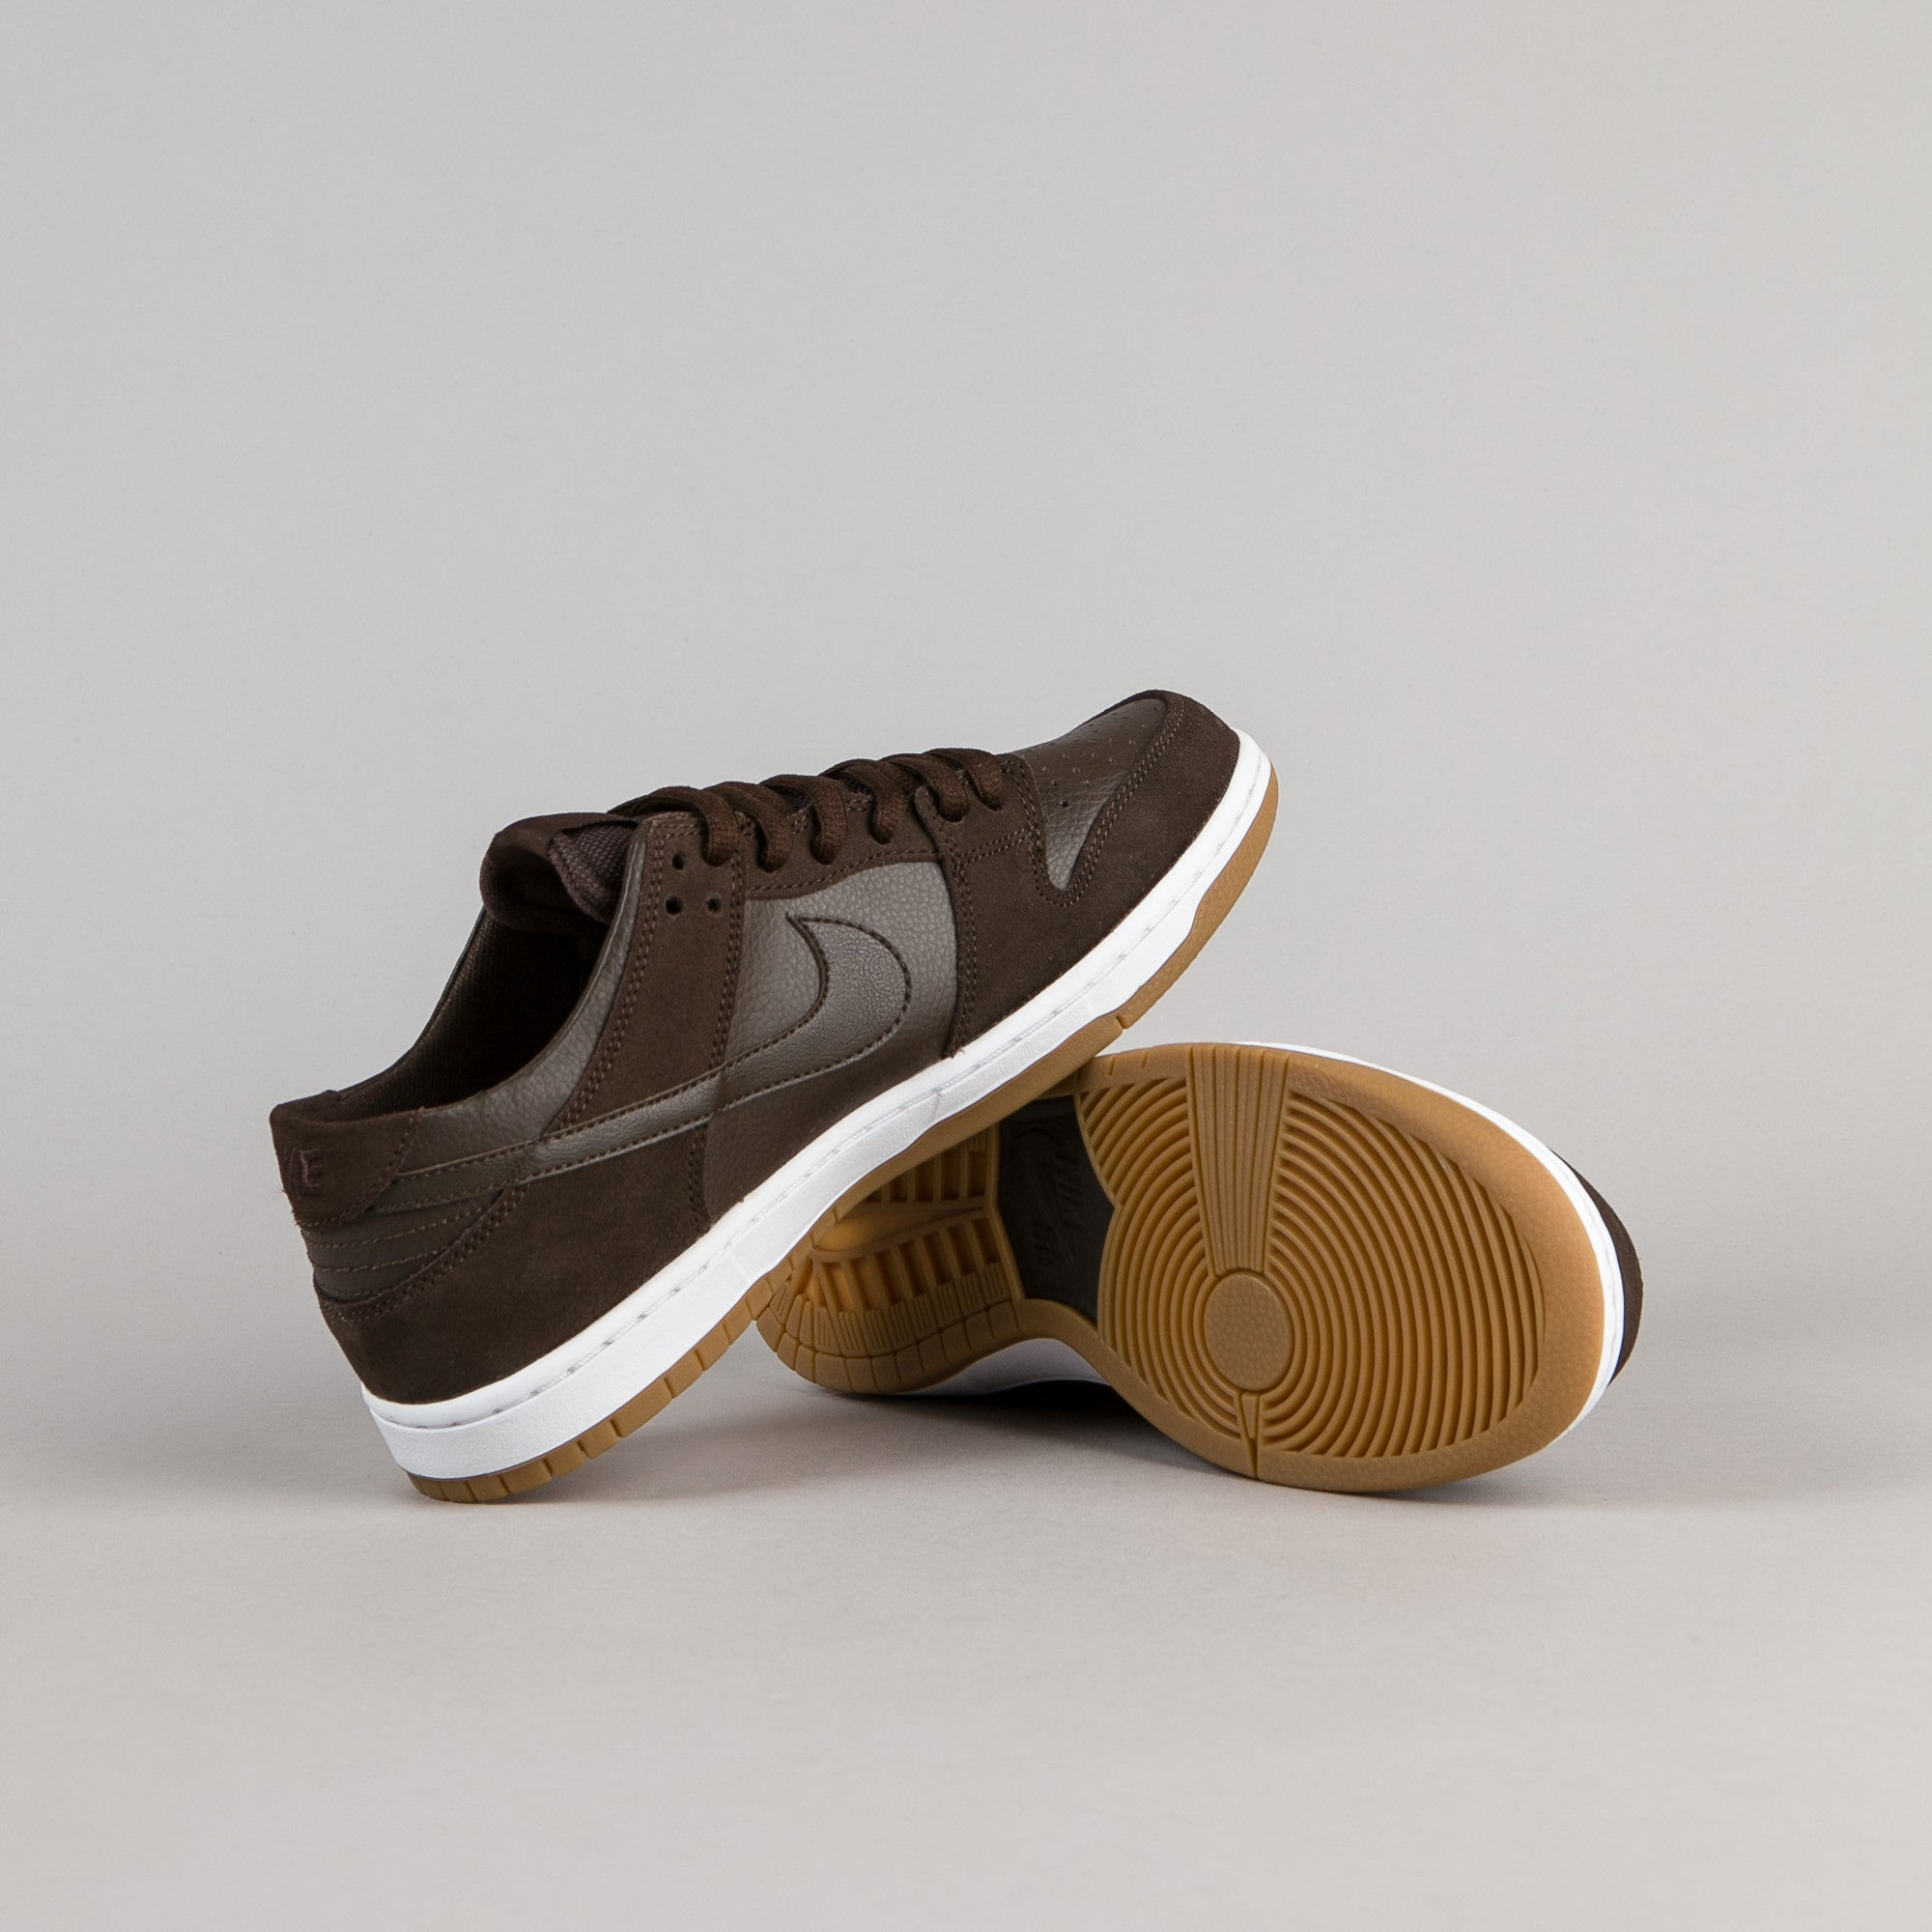 online retailer 8d88f 4a0e8 ... Nike SB Dunk Low Pro Ishod Wair Shoes - Baroque Brown   Baroque Brown -  White ...